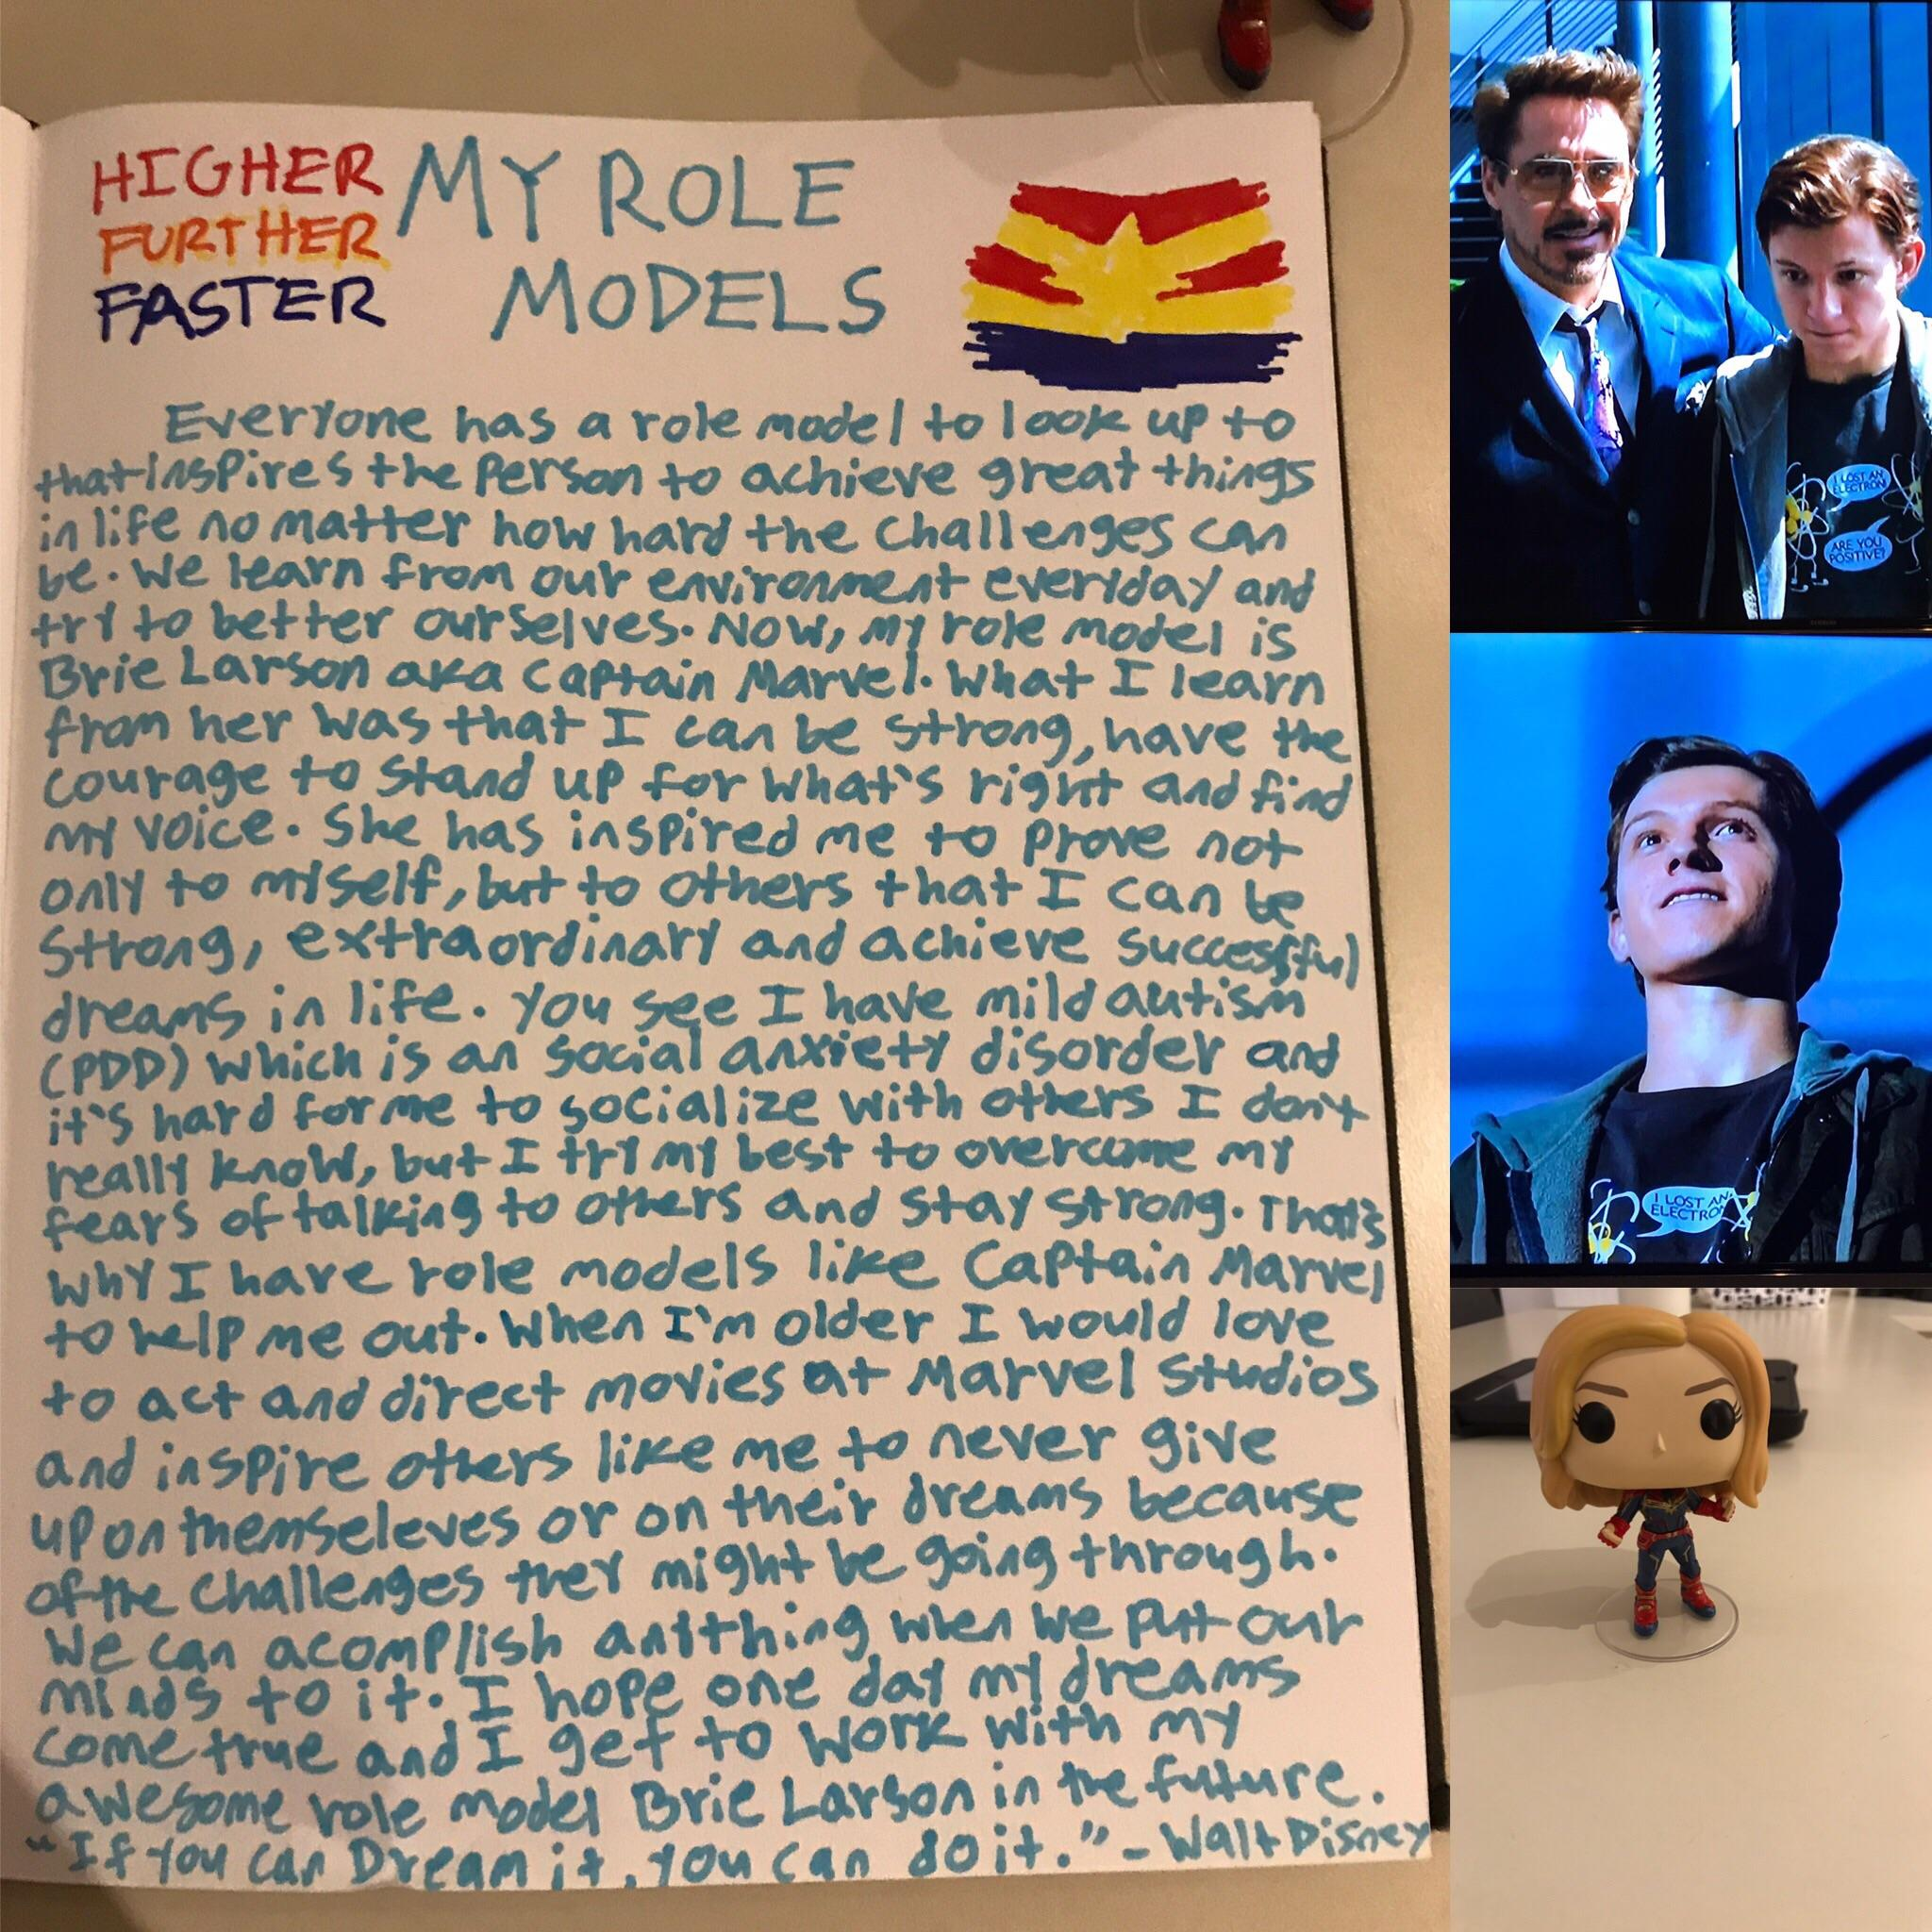 Tom Holland S Role Model Is Robertdowneyjr And He Got To